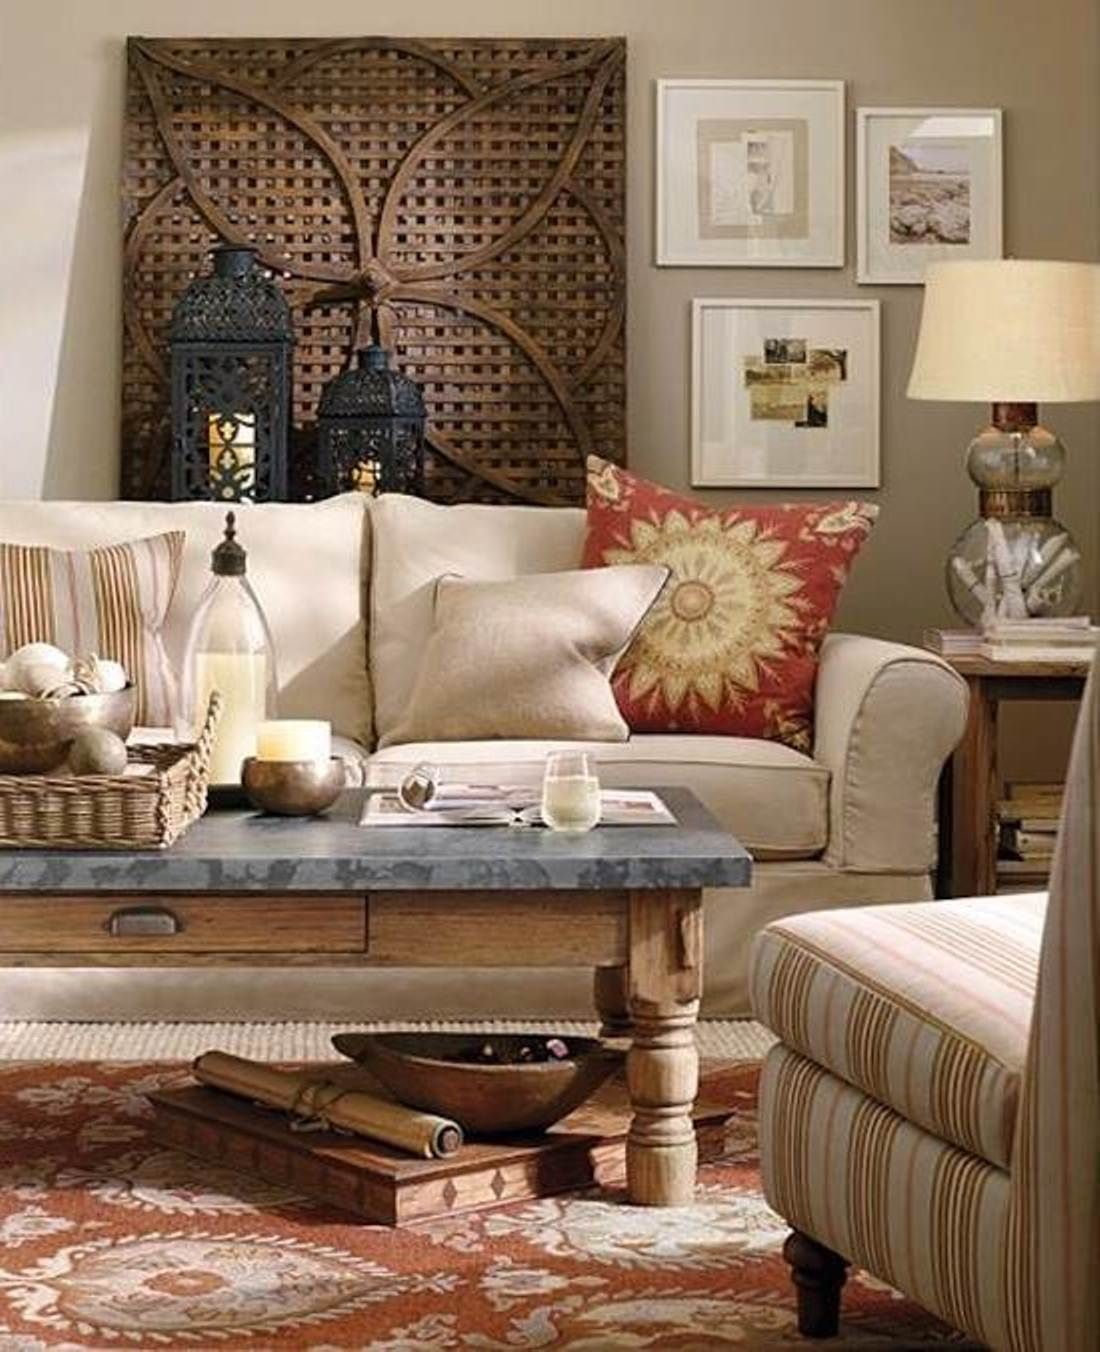 decorating ideas for living rooms | Go for Cohesive Design with ...